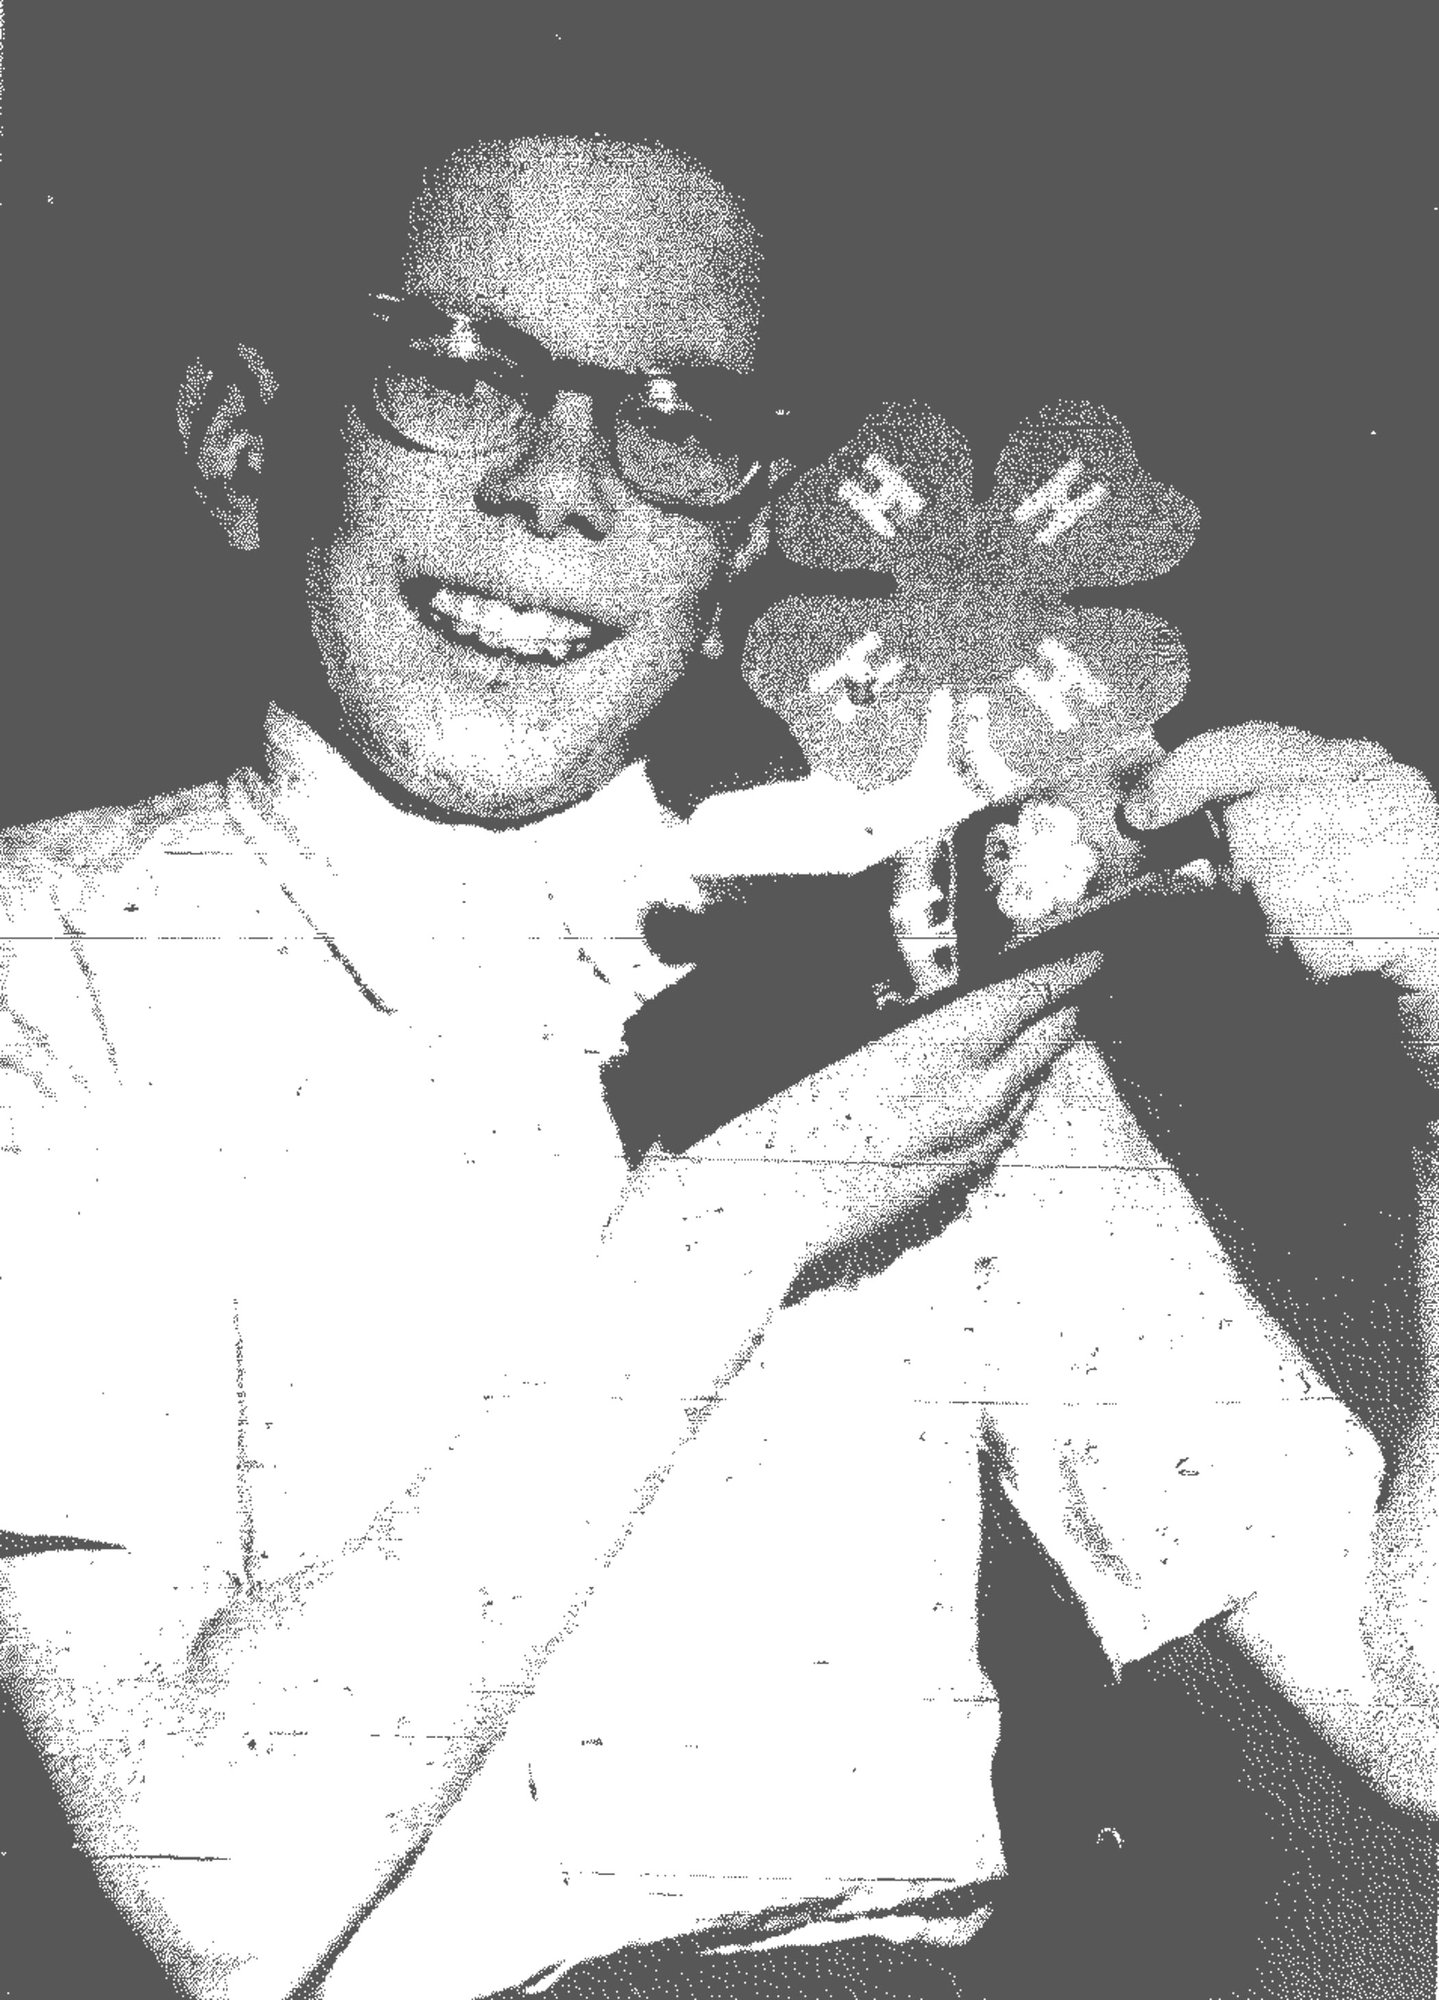 1969 - Steve Stevenson, son of Mr. and Mrs. William H. Stevenson, received a purple ribbon, which is higher than a blue ribbon, for his woodworking project exhibited during the Achievement Days. He made a doorstop with the 4-H emblem on the front and in the 4-H colors of green with white letters. Steve was a seventh-grader at Alice Drive Junior High School and was in 4-H work for four years at the time.